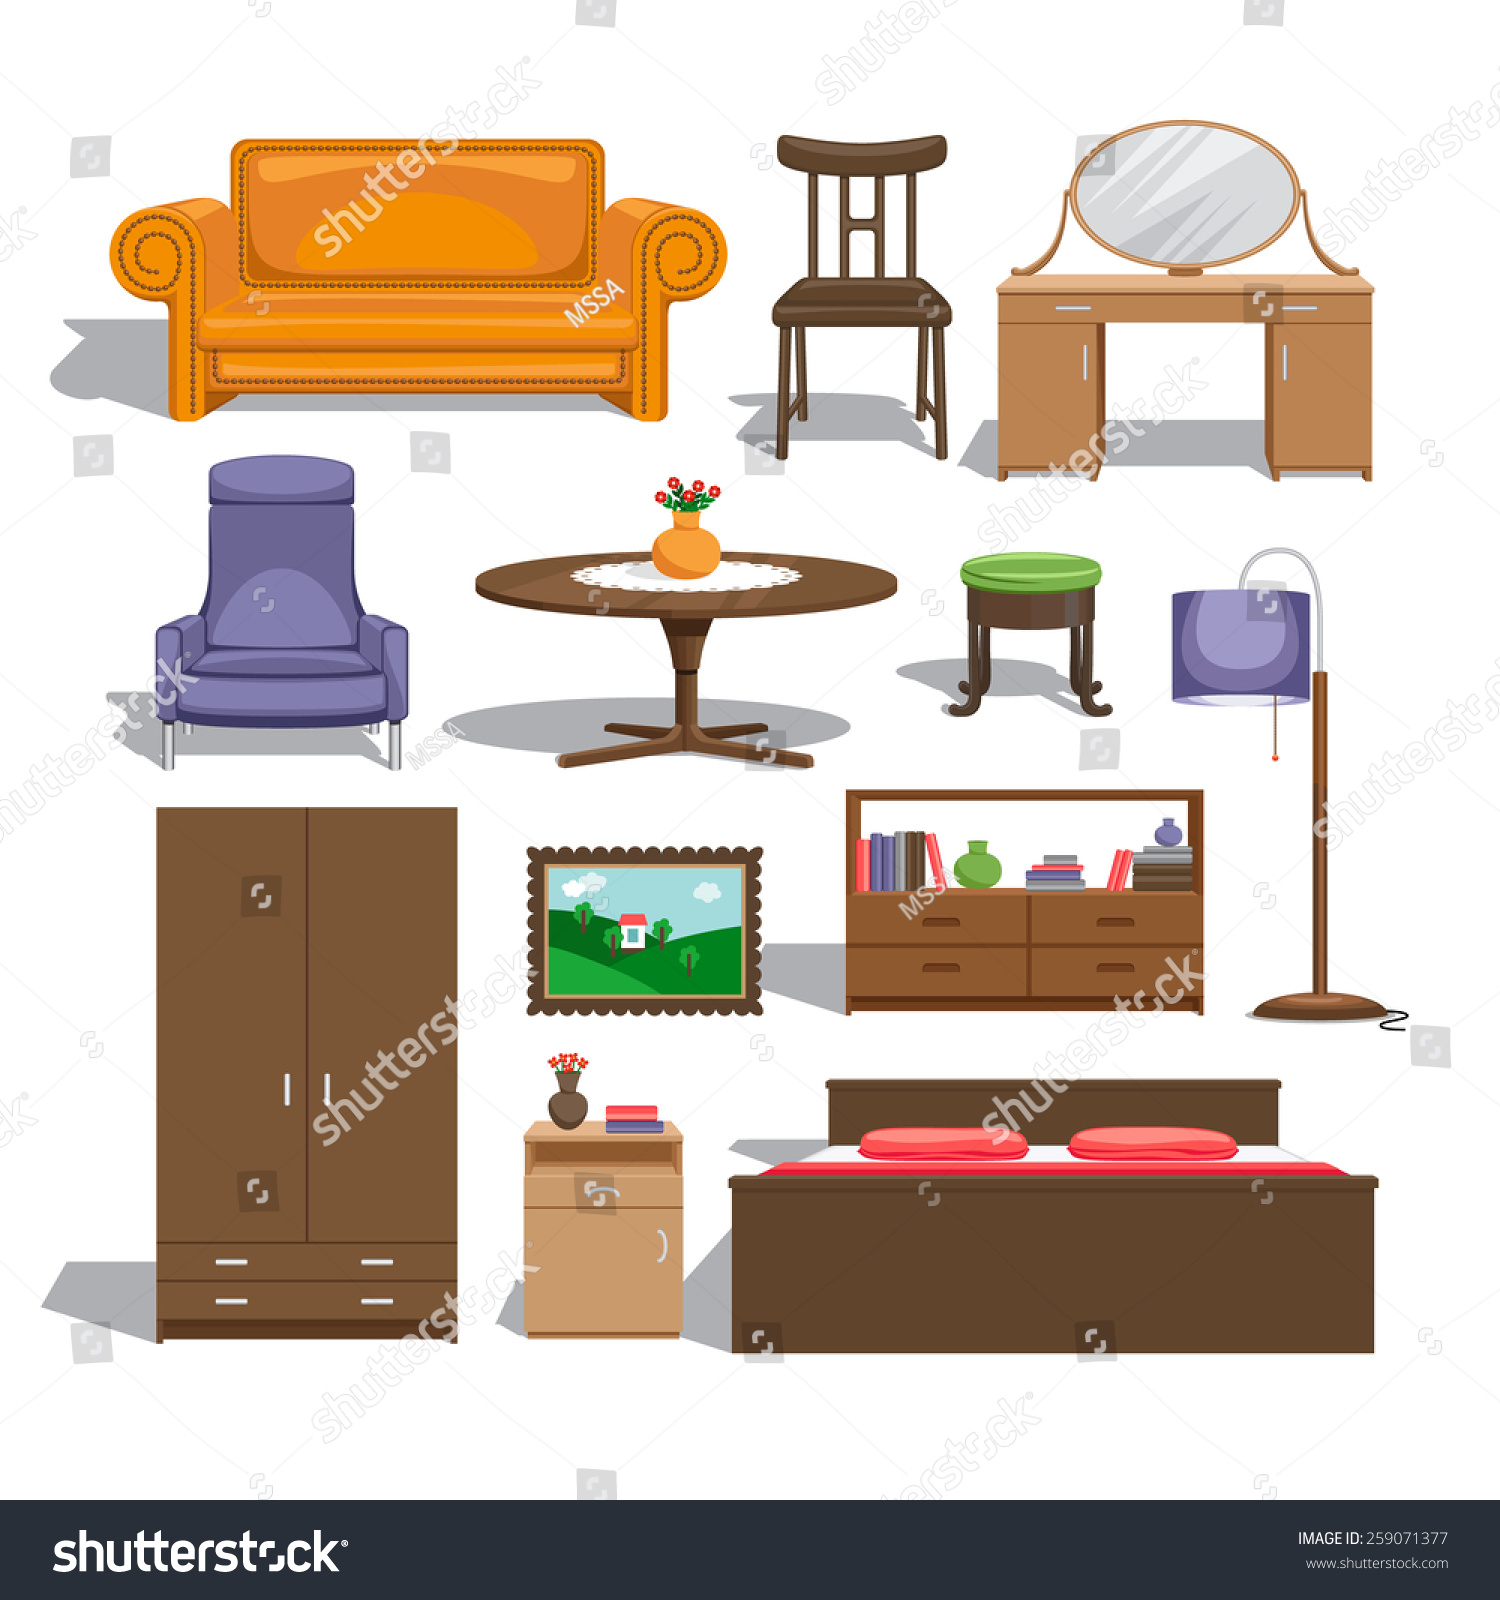 Furniture Bedroom Lamp Table Chair Picture Stock Illustration